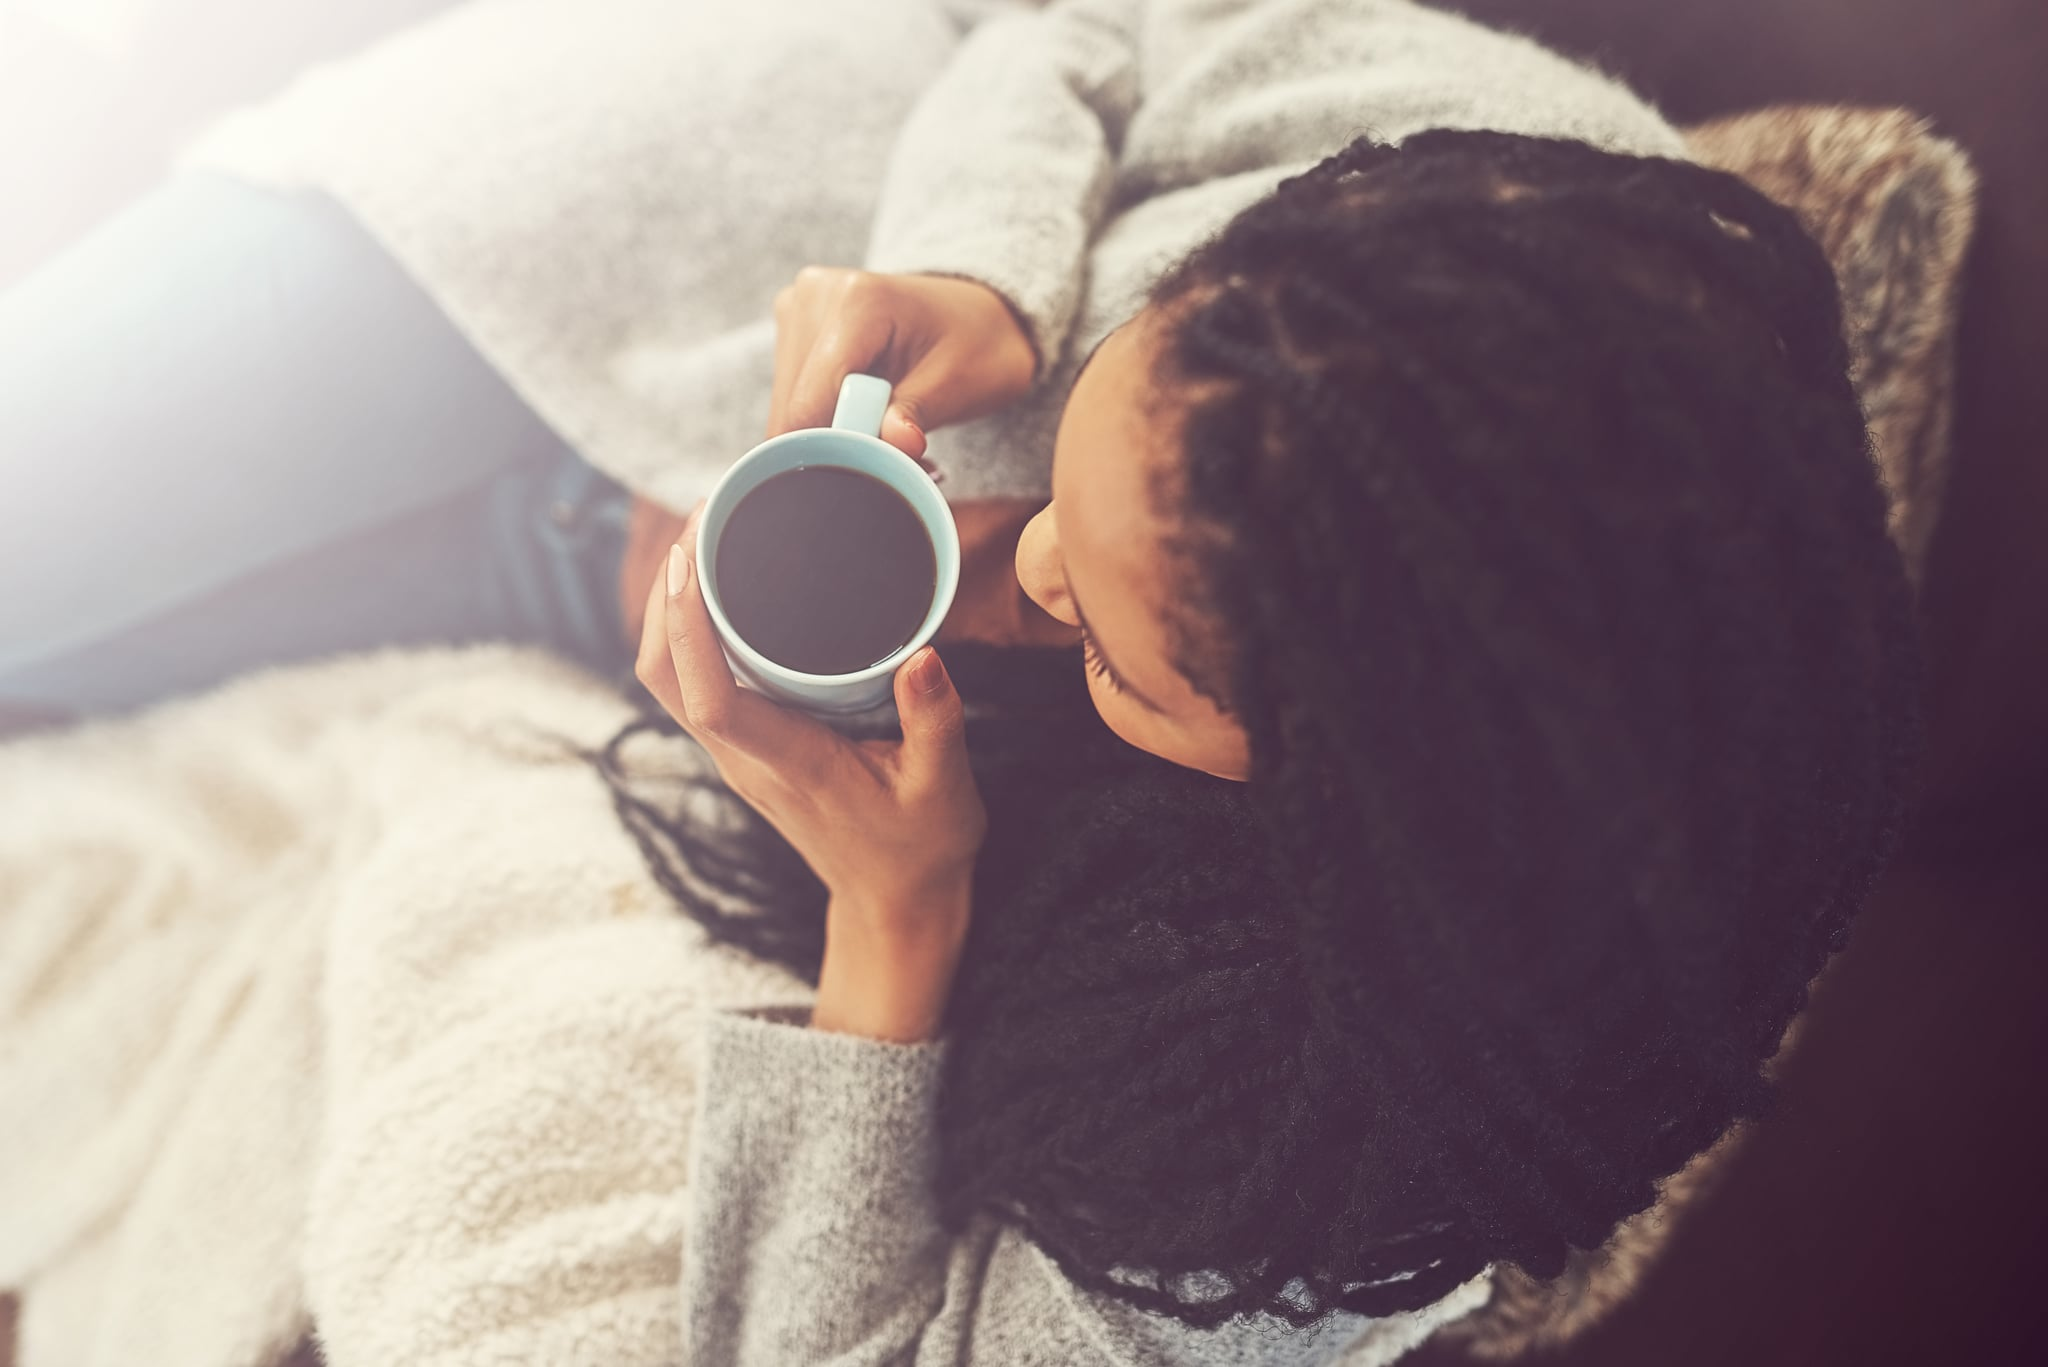 Shot of a young woman enjoying a cup of coffee at home